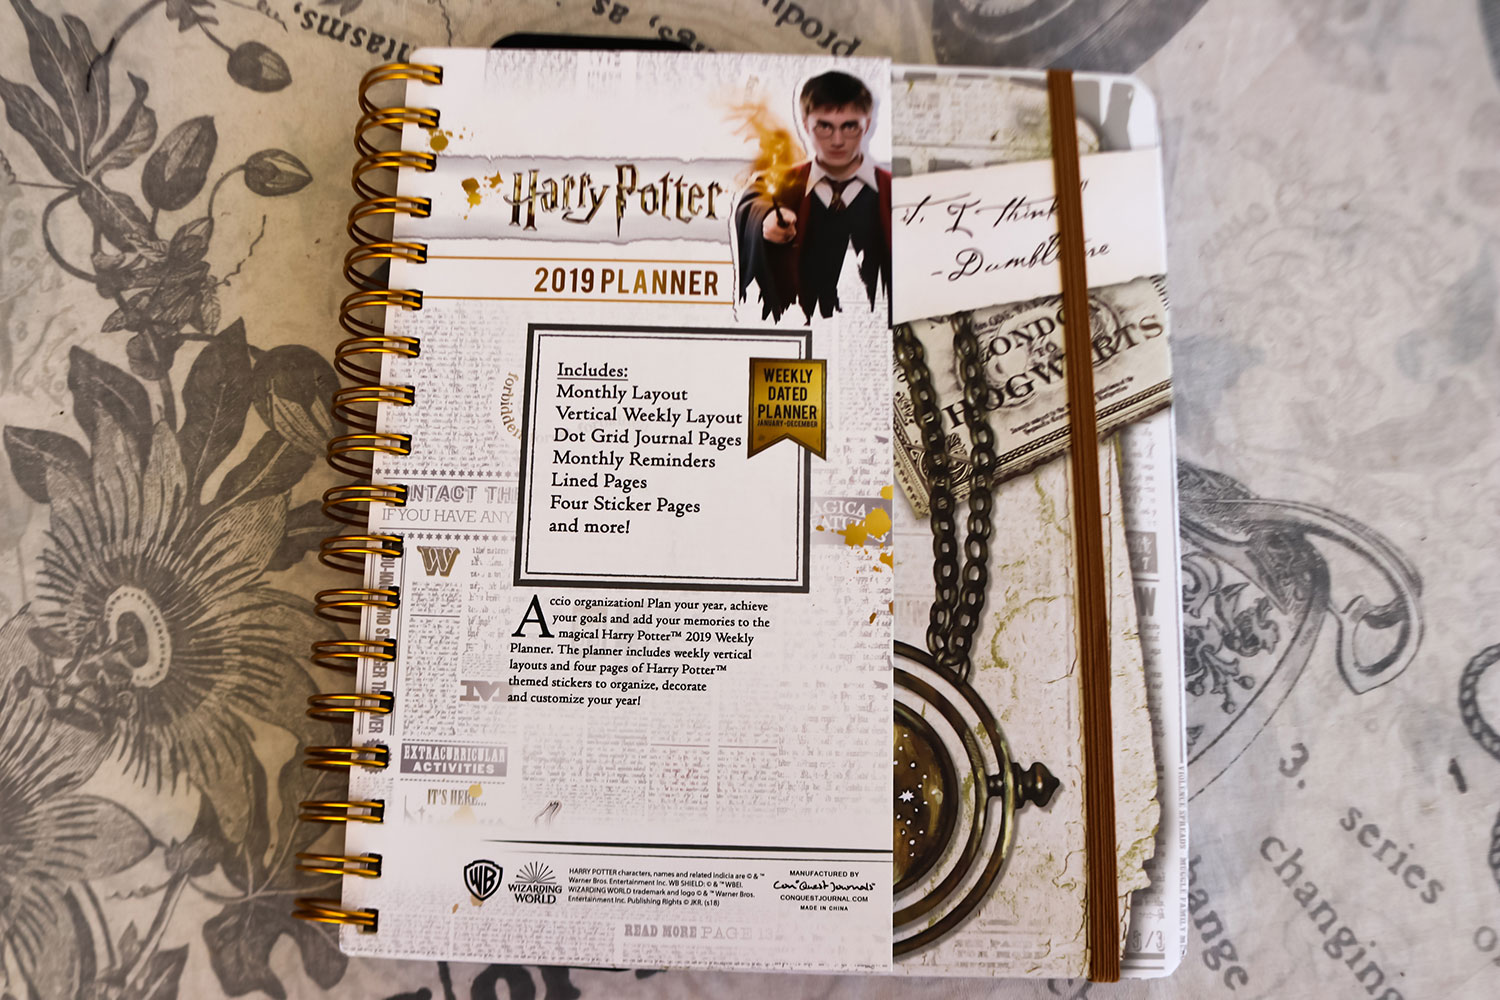 Front cover for Harry Potter 2019 weekly planner featuring Harry Potter with his wand lit, plus the time turner and a Hogwarts Express ticket